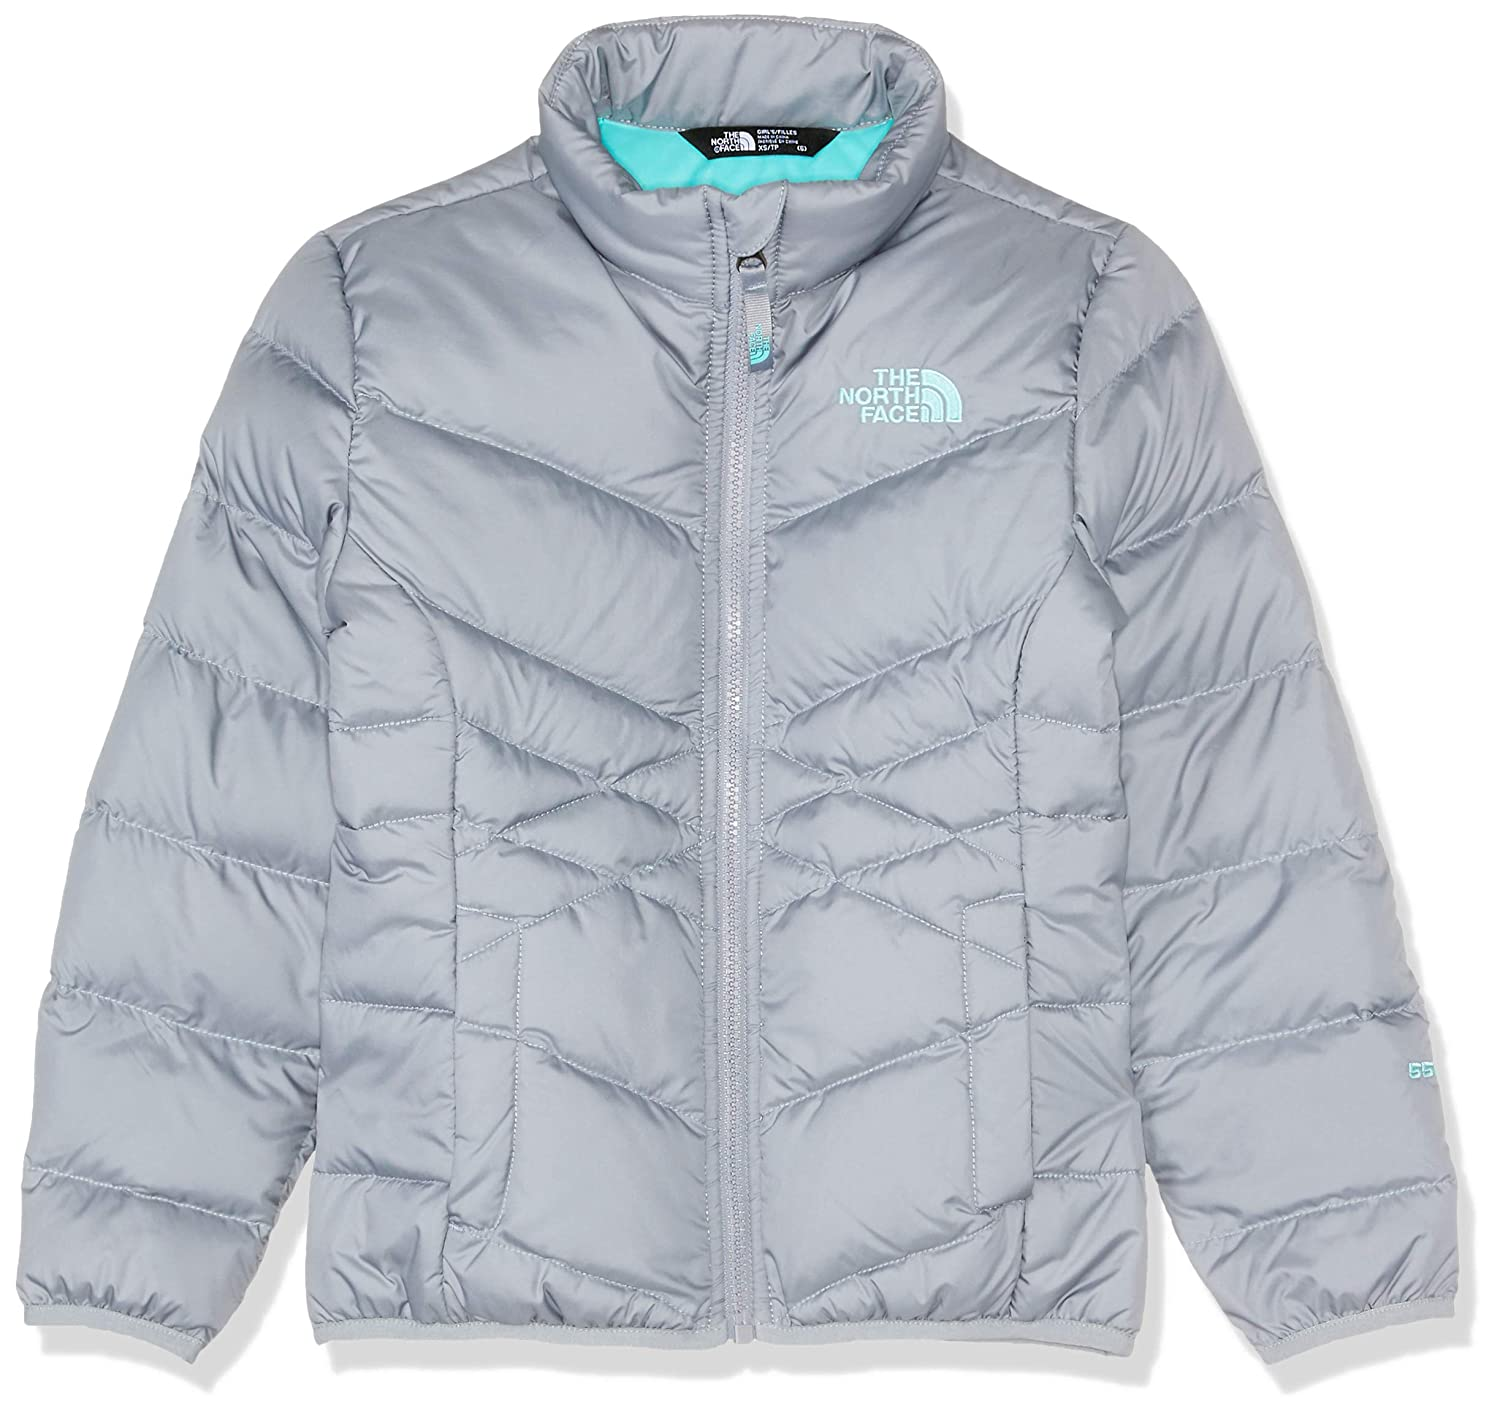 c18daa67801f Amazon.com  The North Face Girl s Andes Down Jacket  Clothing